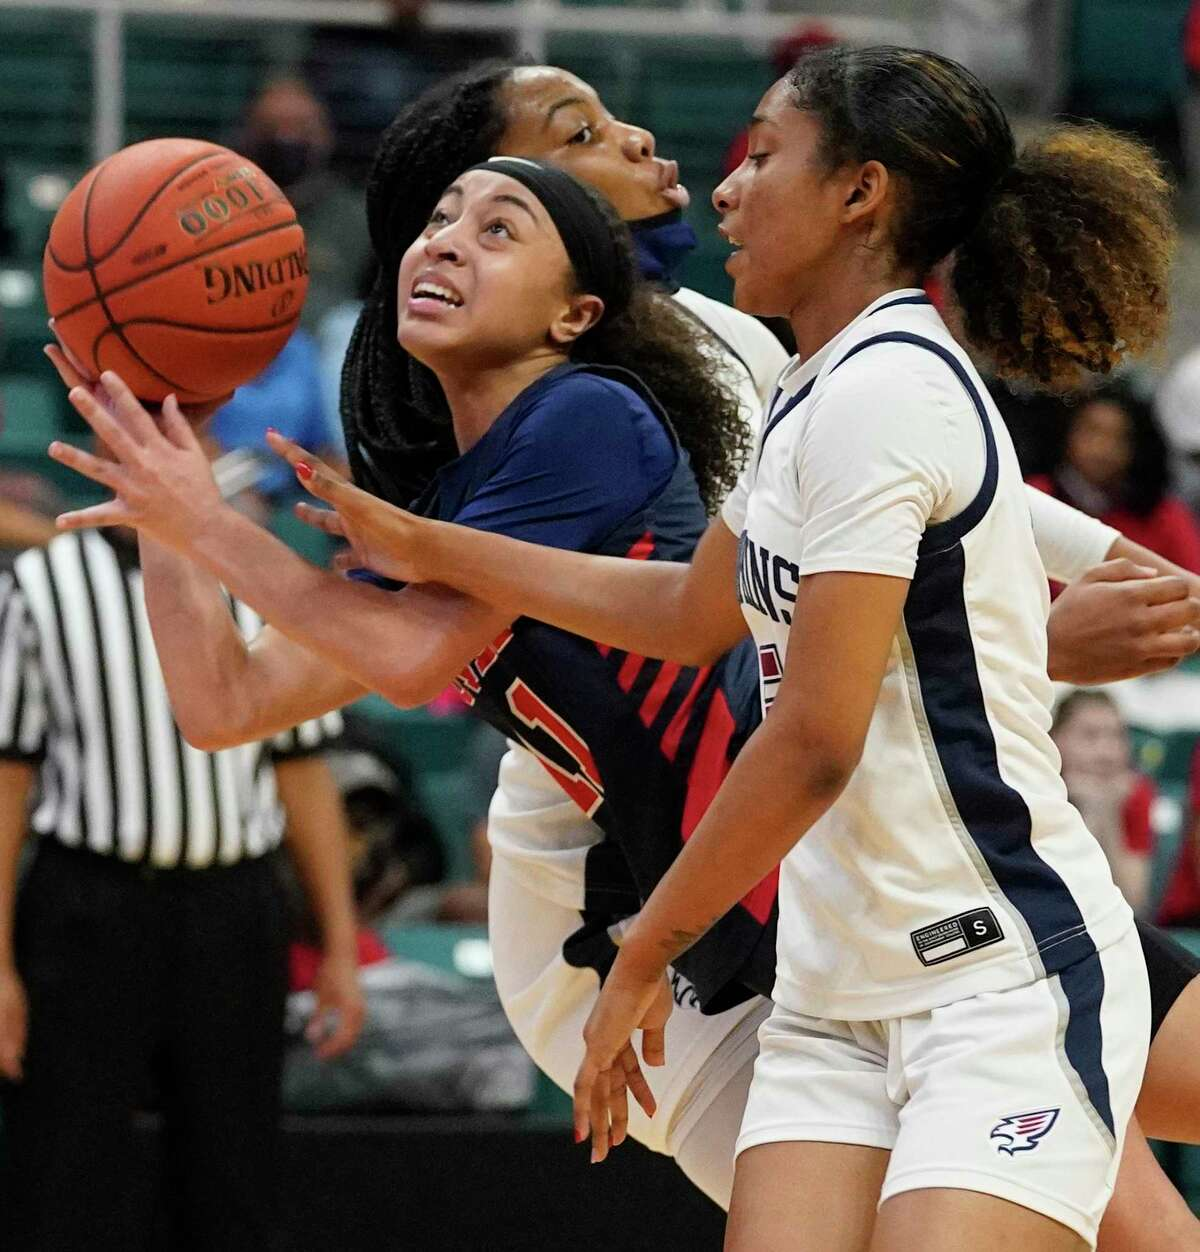 Dulles Nya Threatt (11) is fouled by Tompkins Crystal Smith (5) during girls basketball playoff game at the Merrell Center Wednesday, Feb. 24, 2021 in Katy.